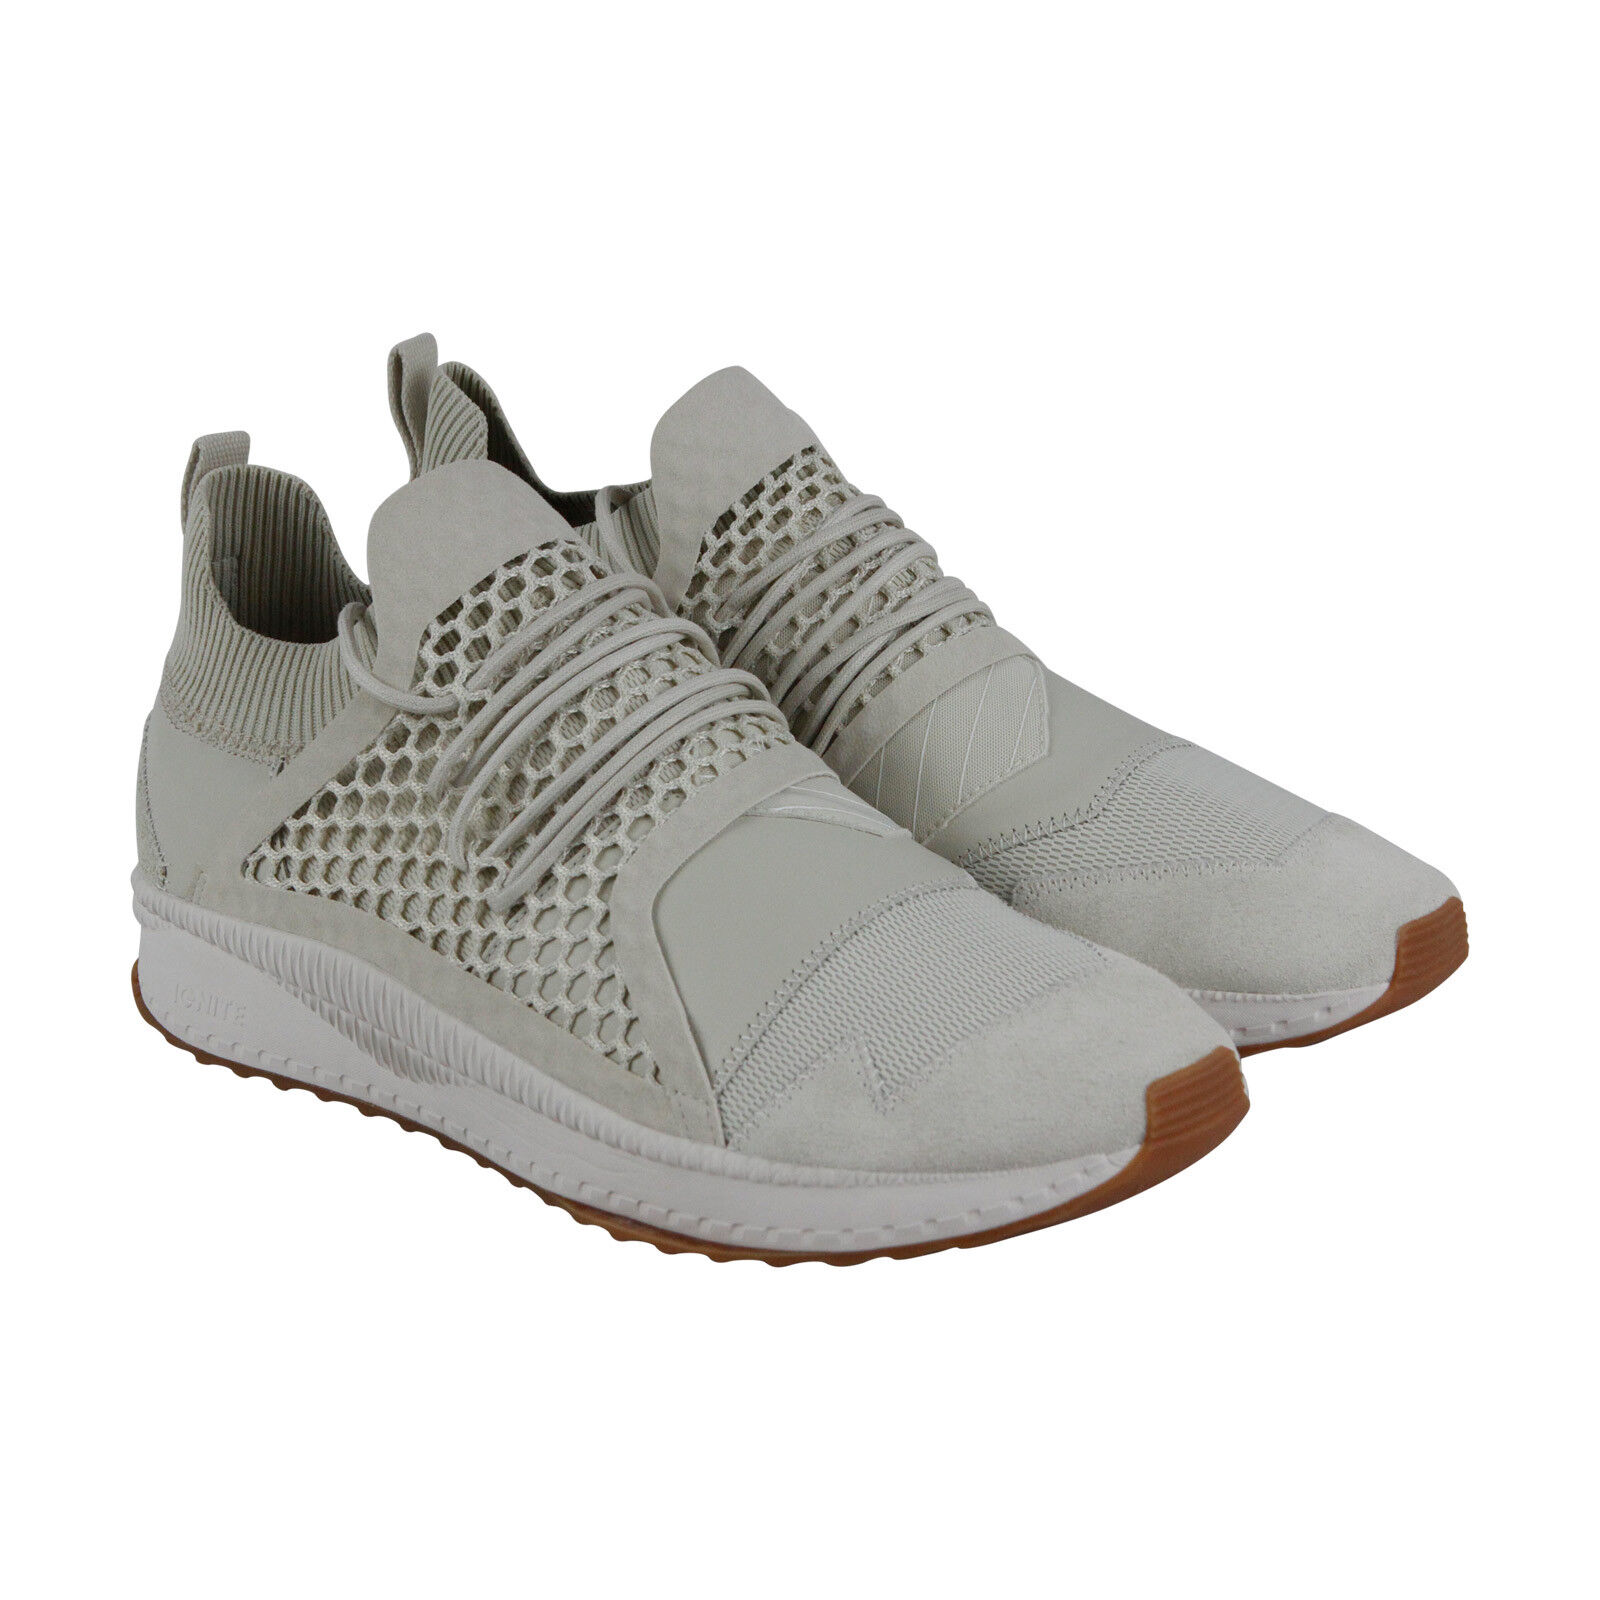 Puma Tsugi netfit han  Hombre Gray Suede   han mesh athletic training zapatos 16e525